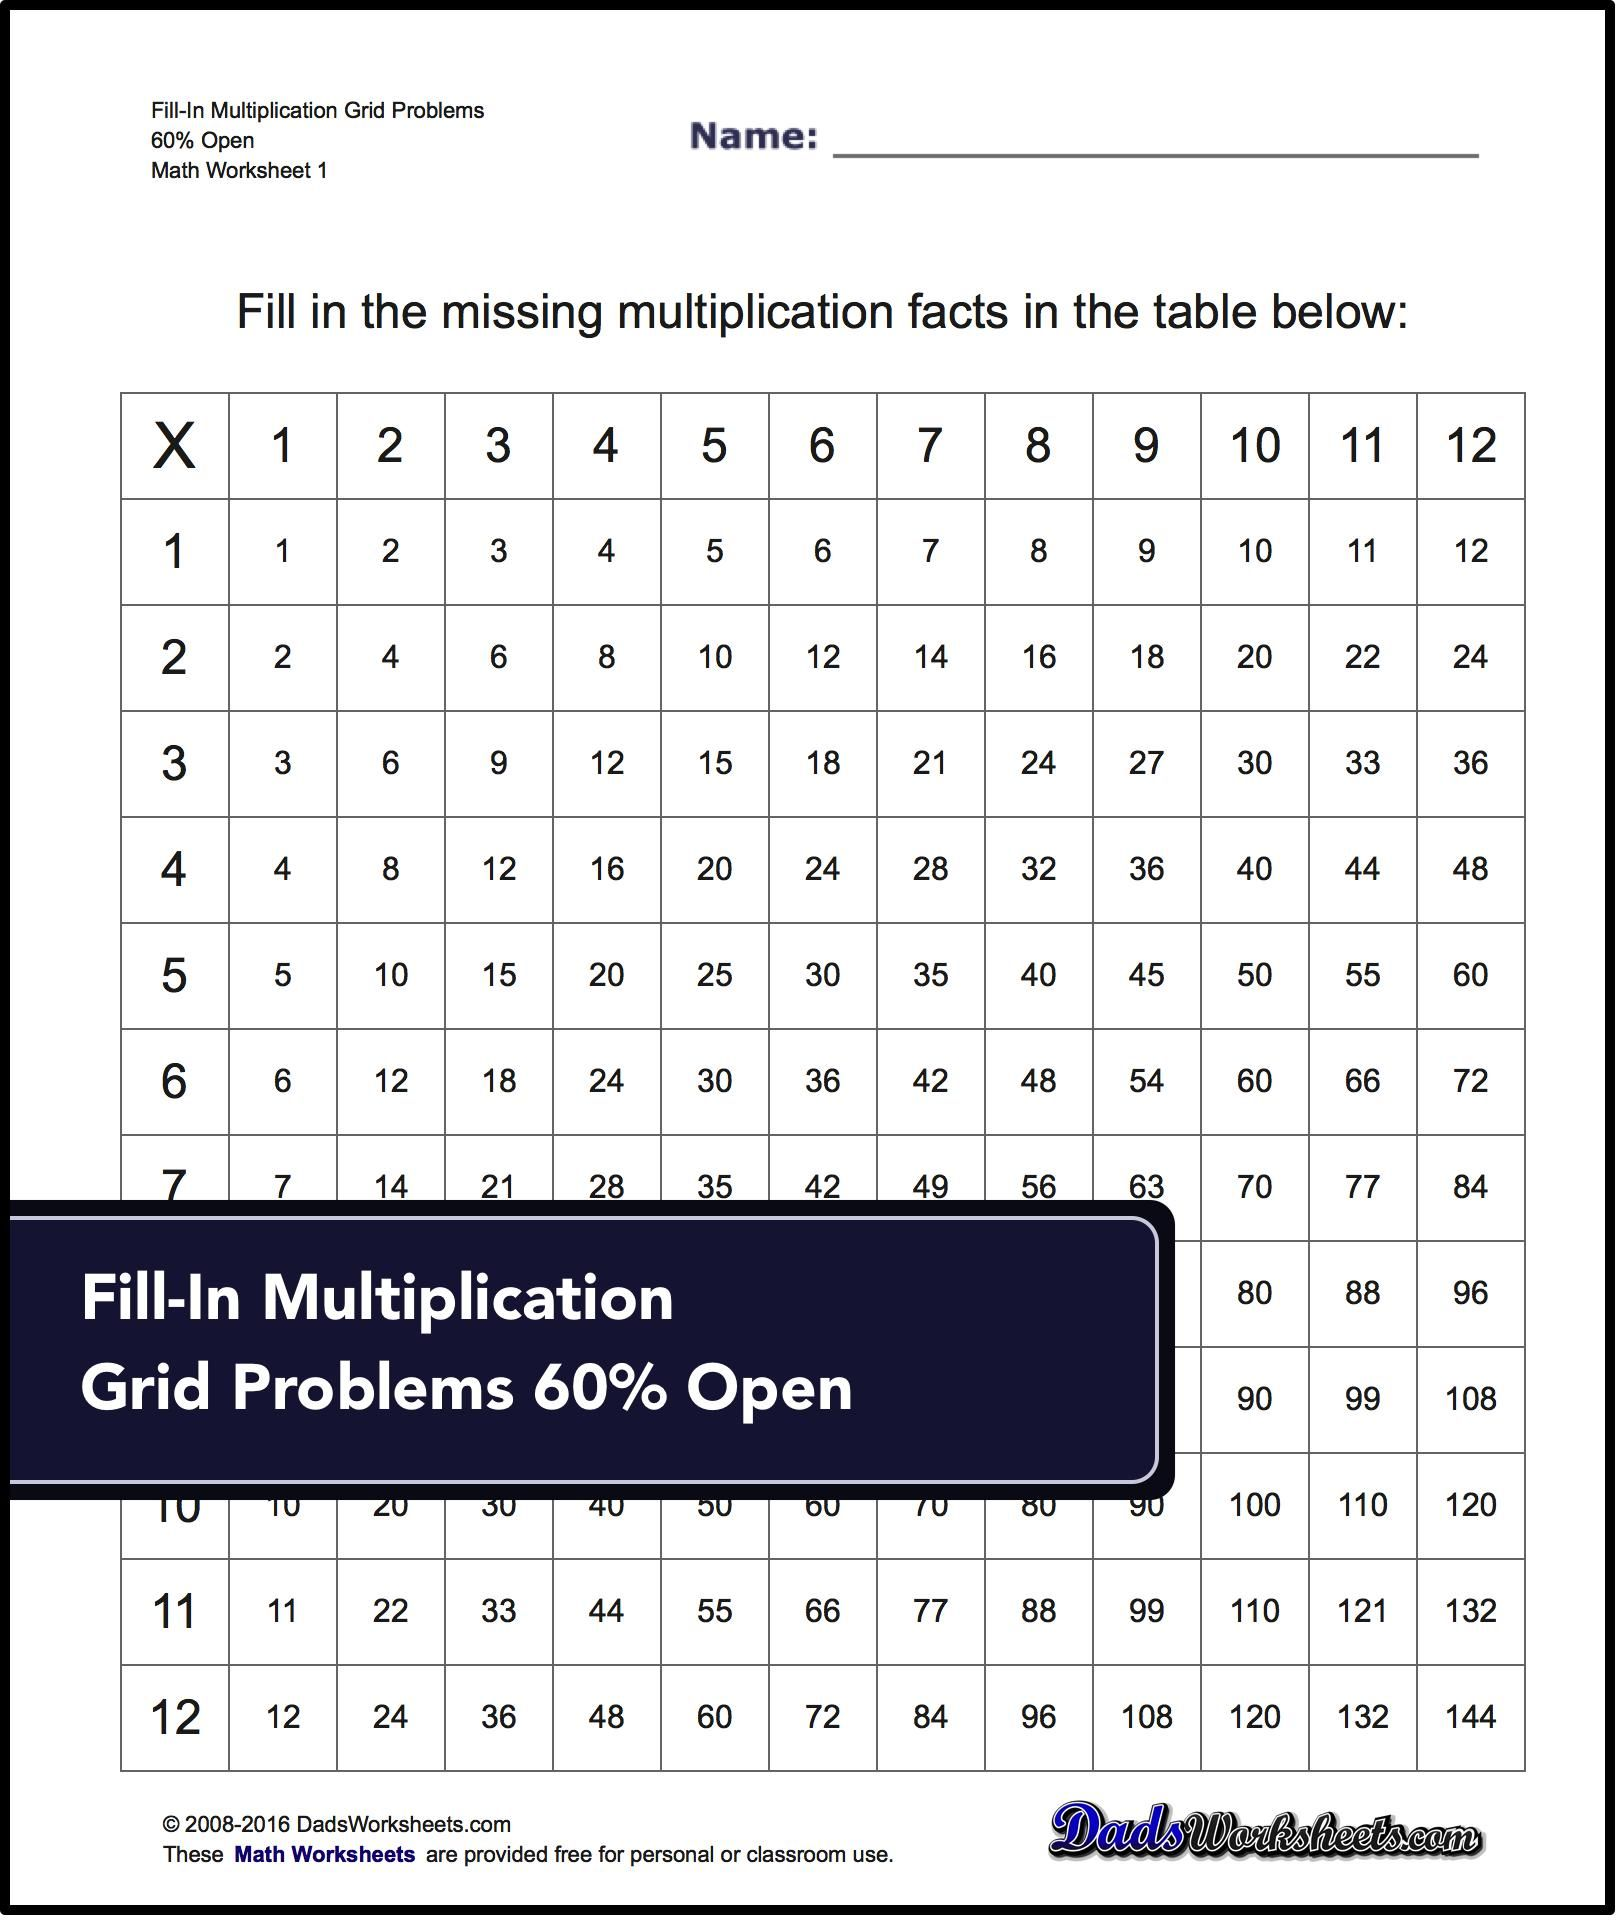 Multiplication Worksheets For Fill In Multiplication Grid Problems 60 Open